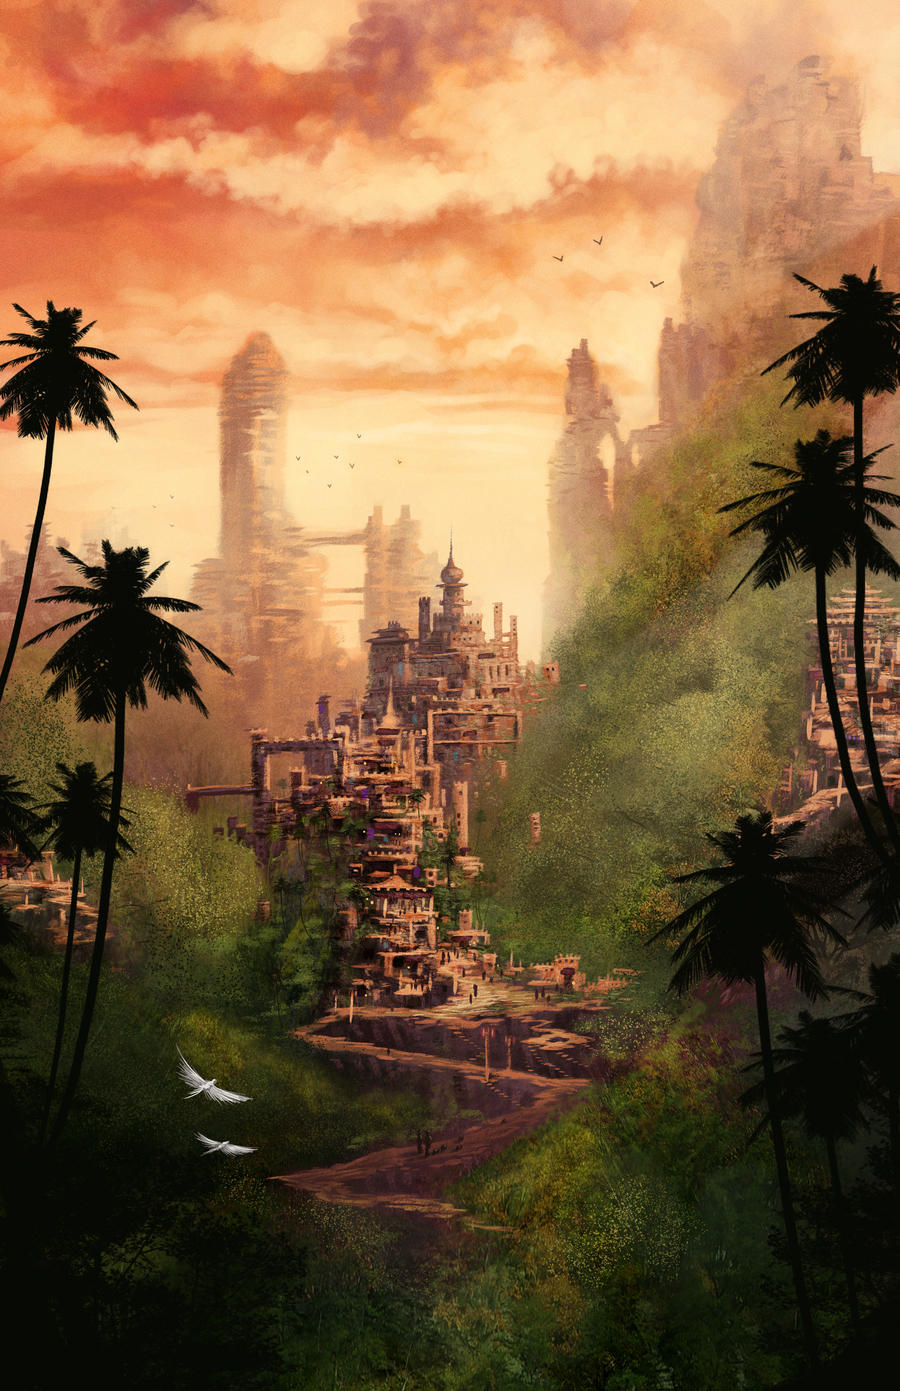 jungle_villages_by_digitalcutti-d5pohae.jpg